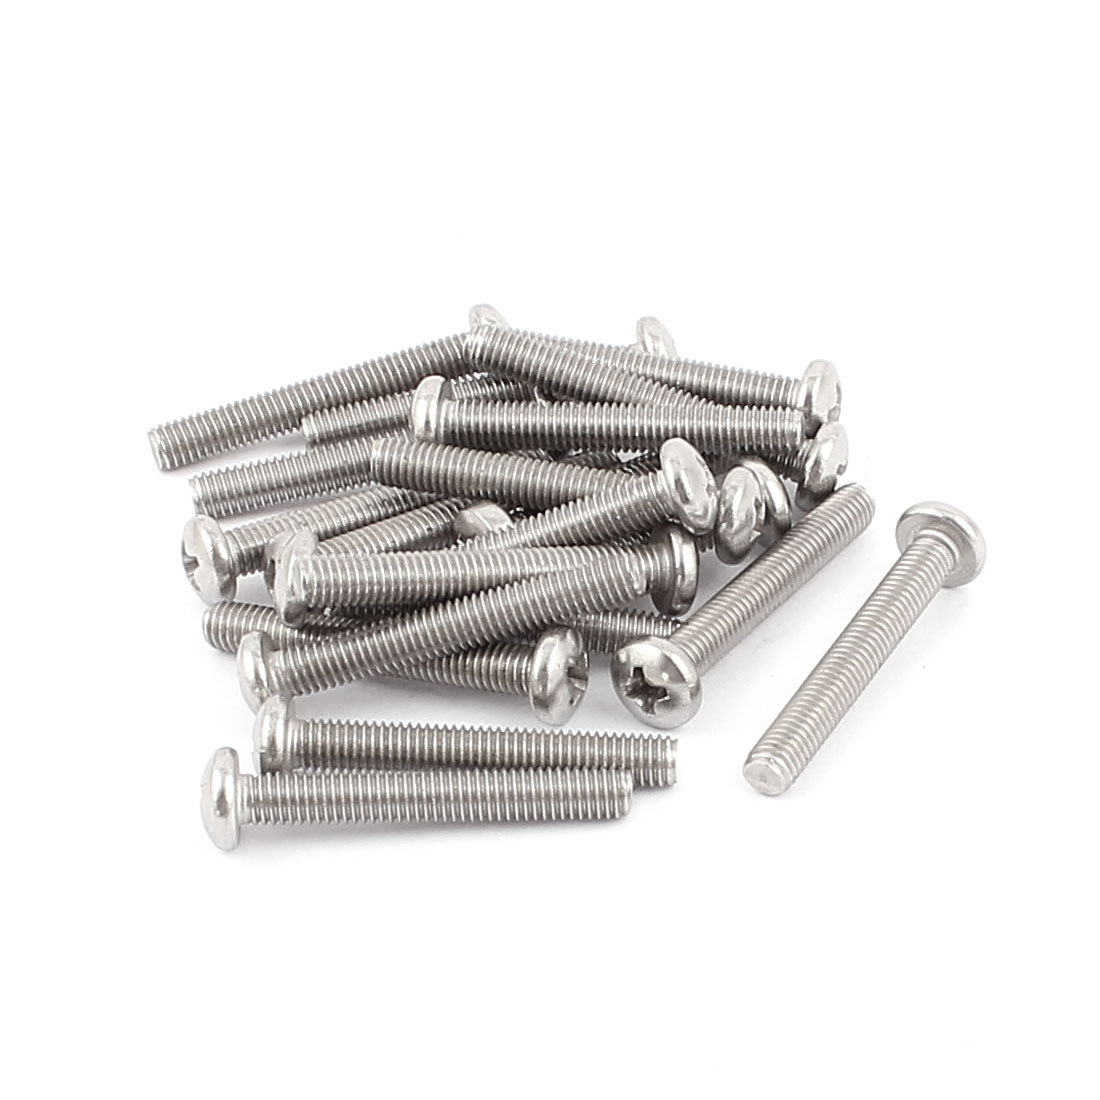 M5x35mm 304 Stainless Steel Phillips Round Head Machine Screw 20pcs